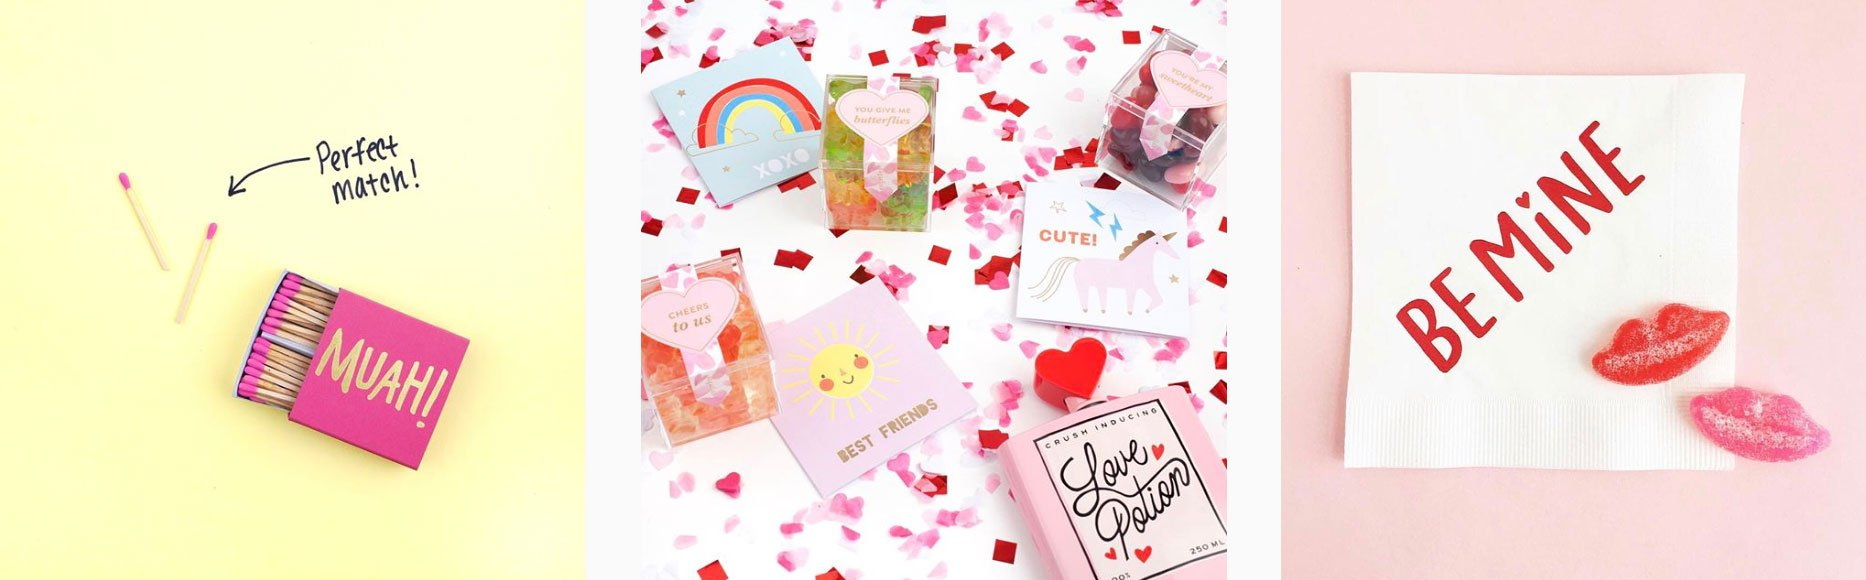 Planoly's Guide to Valentine's Day - PLANOLY Blog Sugarfina